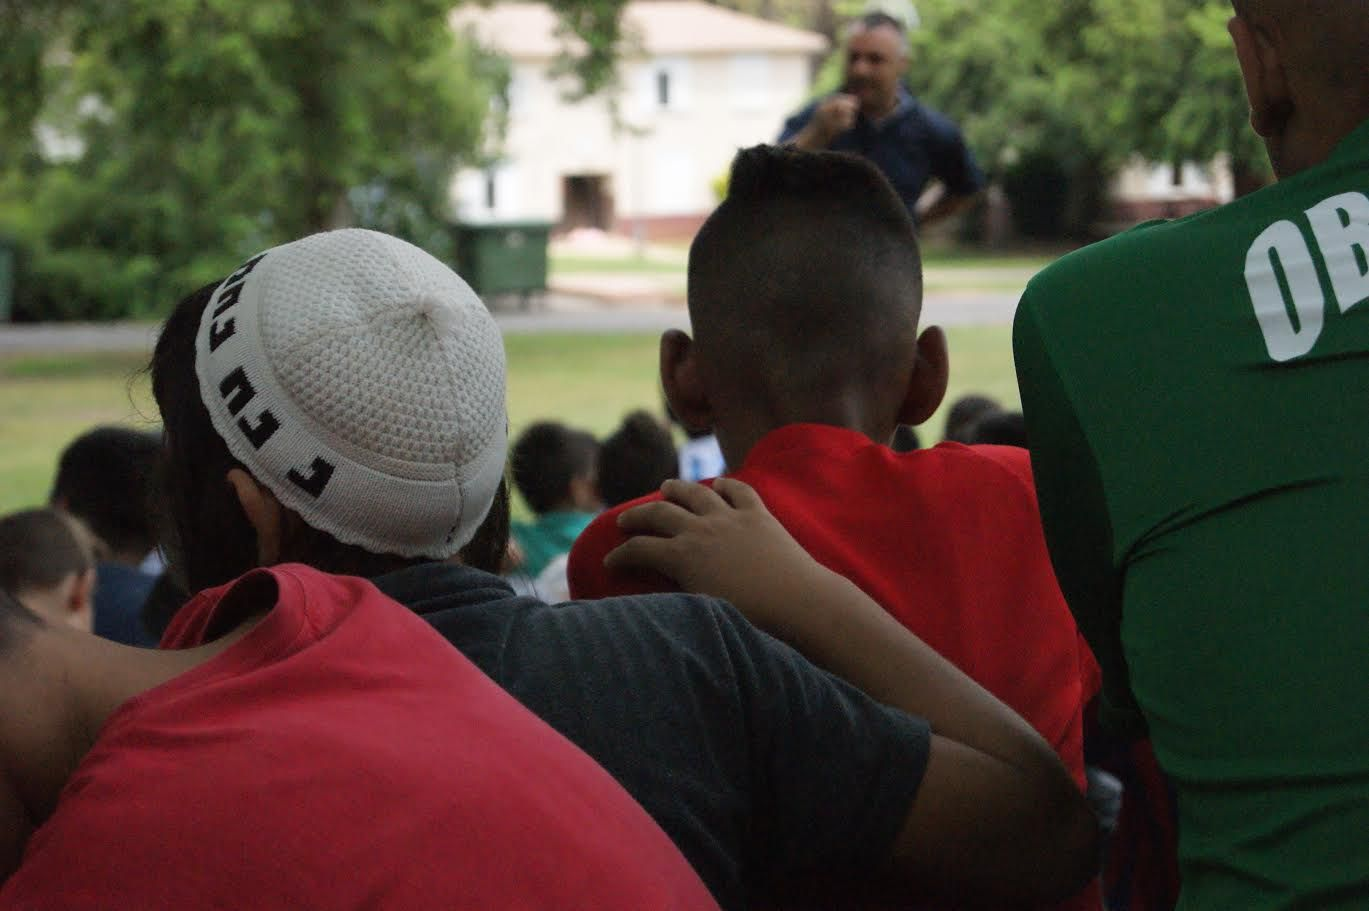 Participants at the Soccer for Peace summer camp listen to a prep talk from head coach Fayad Shalabi